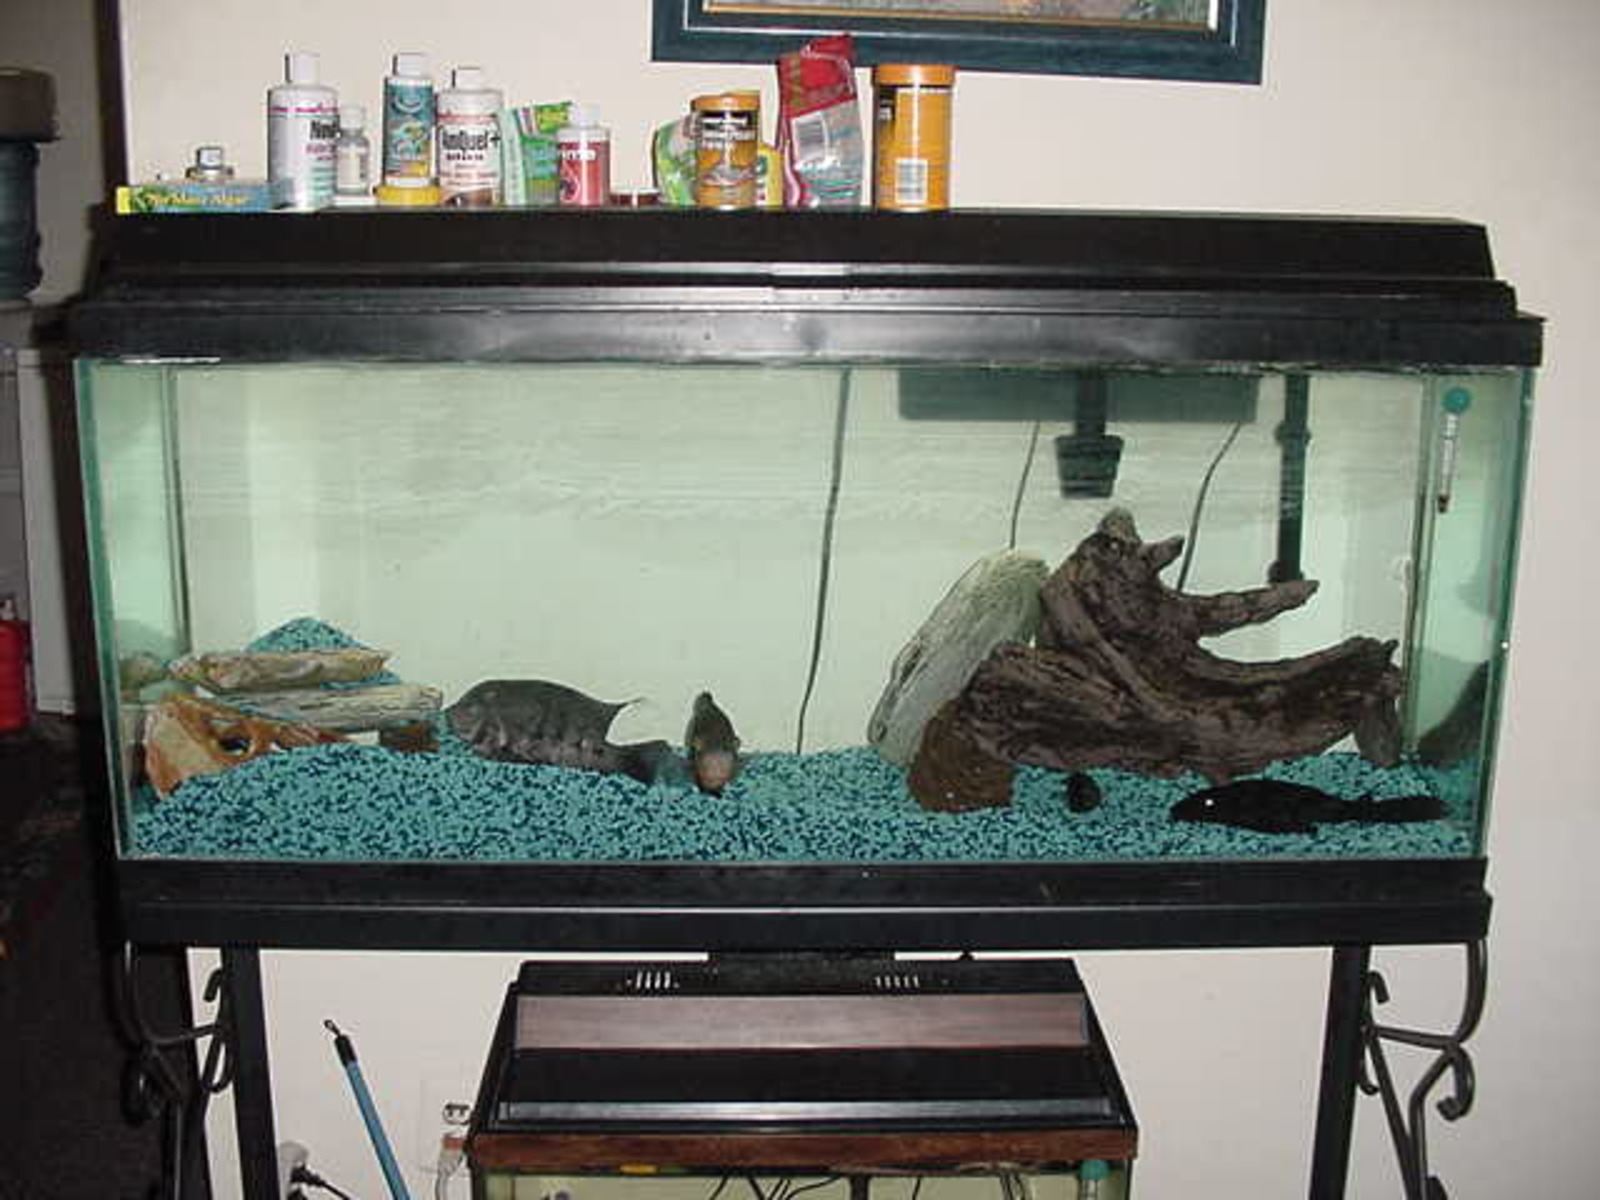 55gal with Oscar, Cichlids(2), Plecostimus(algae eater) | by undefined